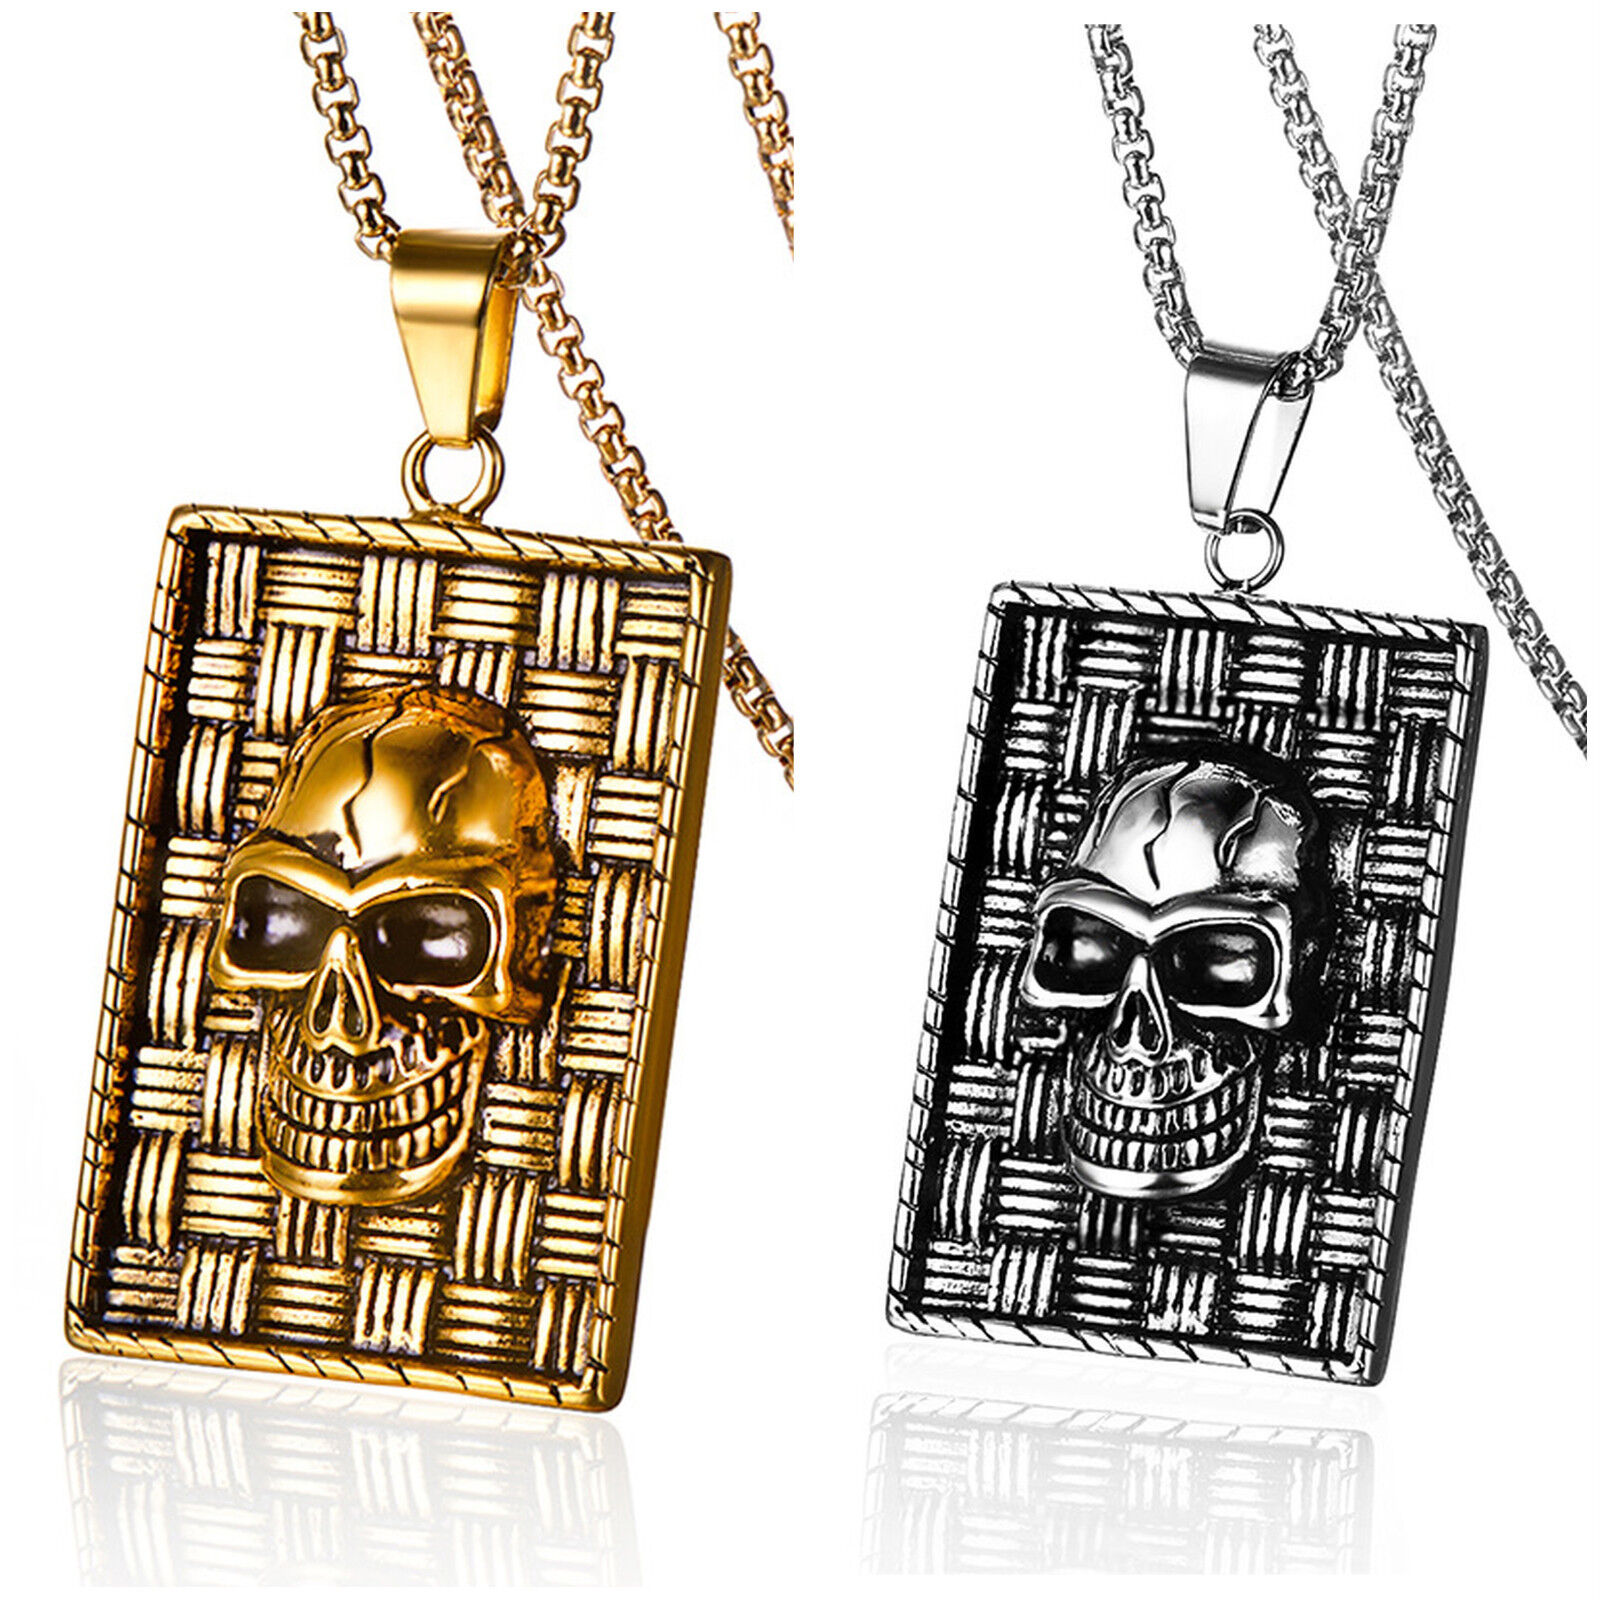 Men's Stainless Steel Large and Heavy Gothic Skull Biker Pendant Necklace Chains, Necklaces & Pendants